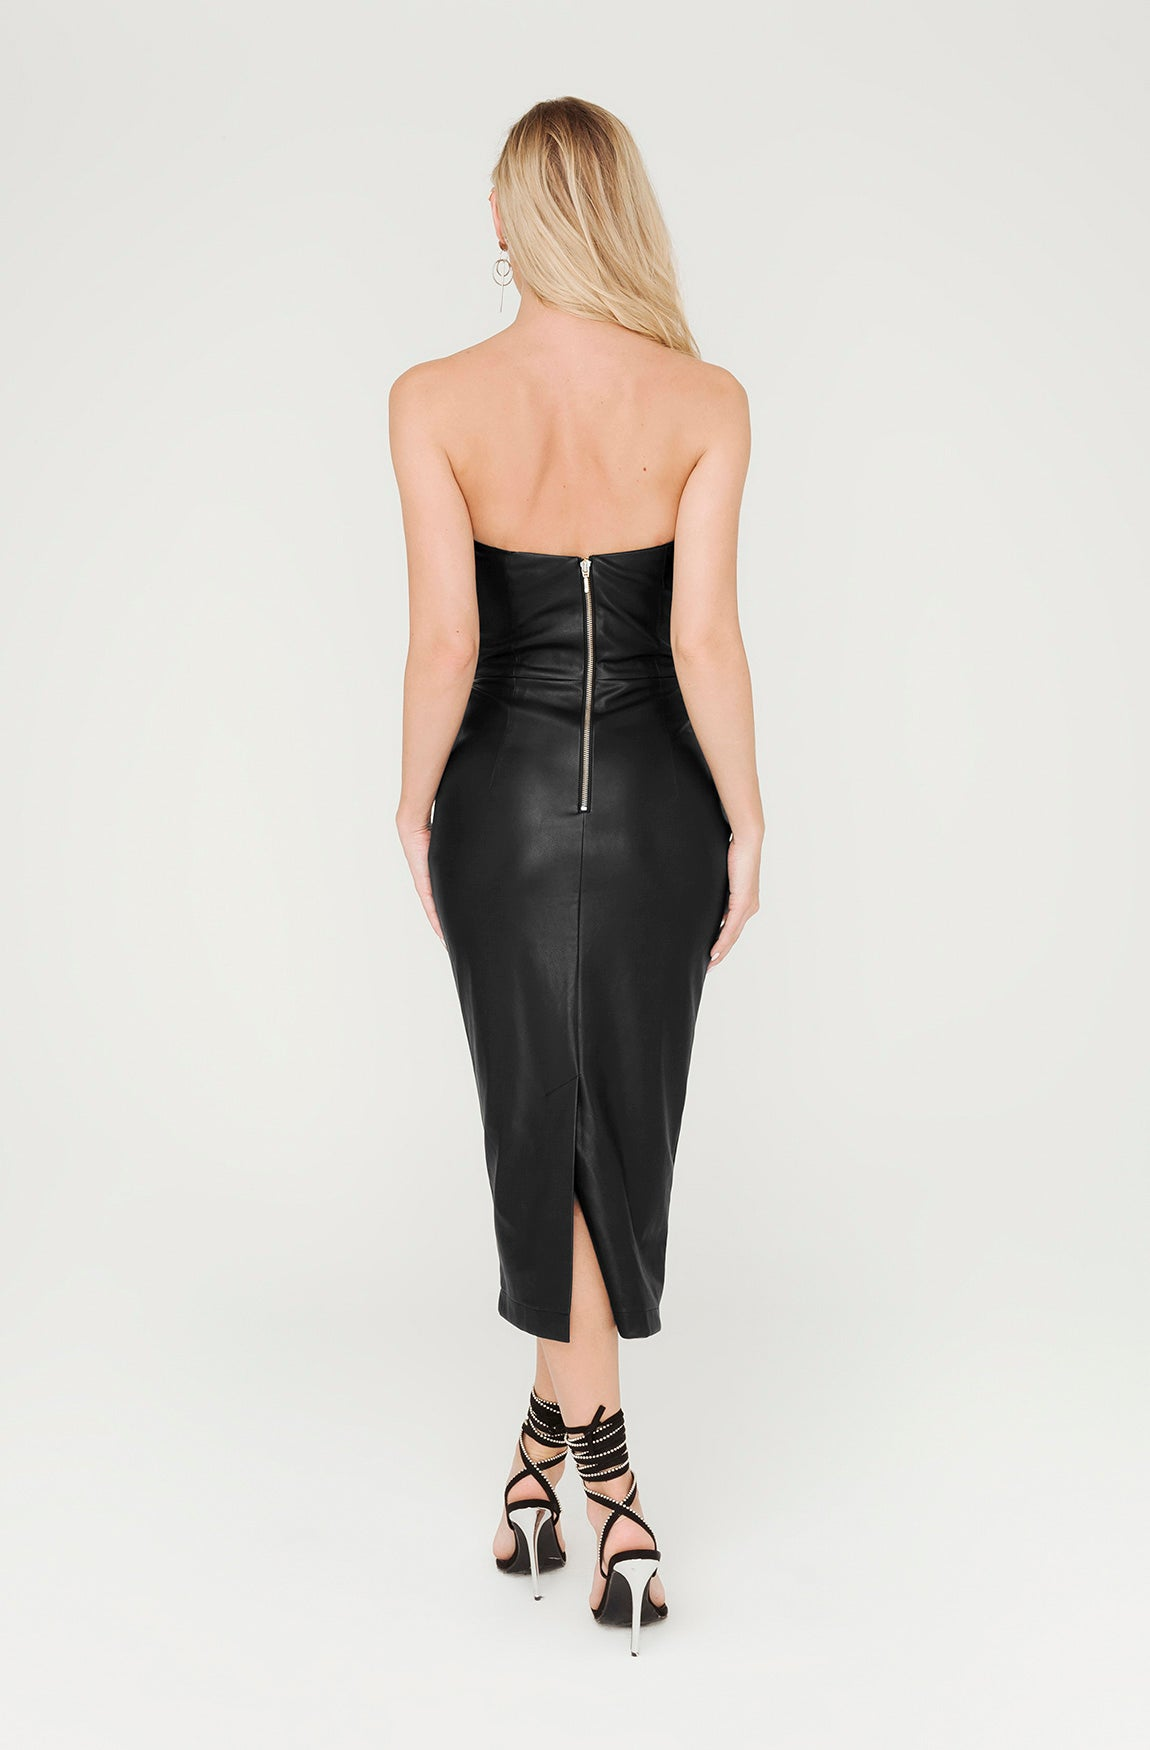 GOTHAM FAUX LEATHER DRESS